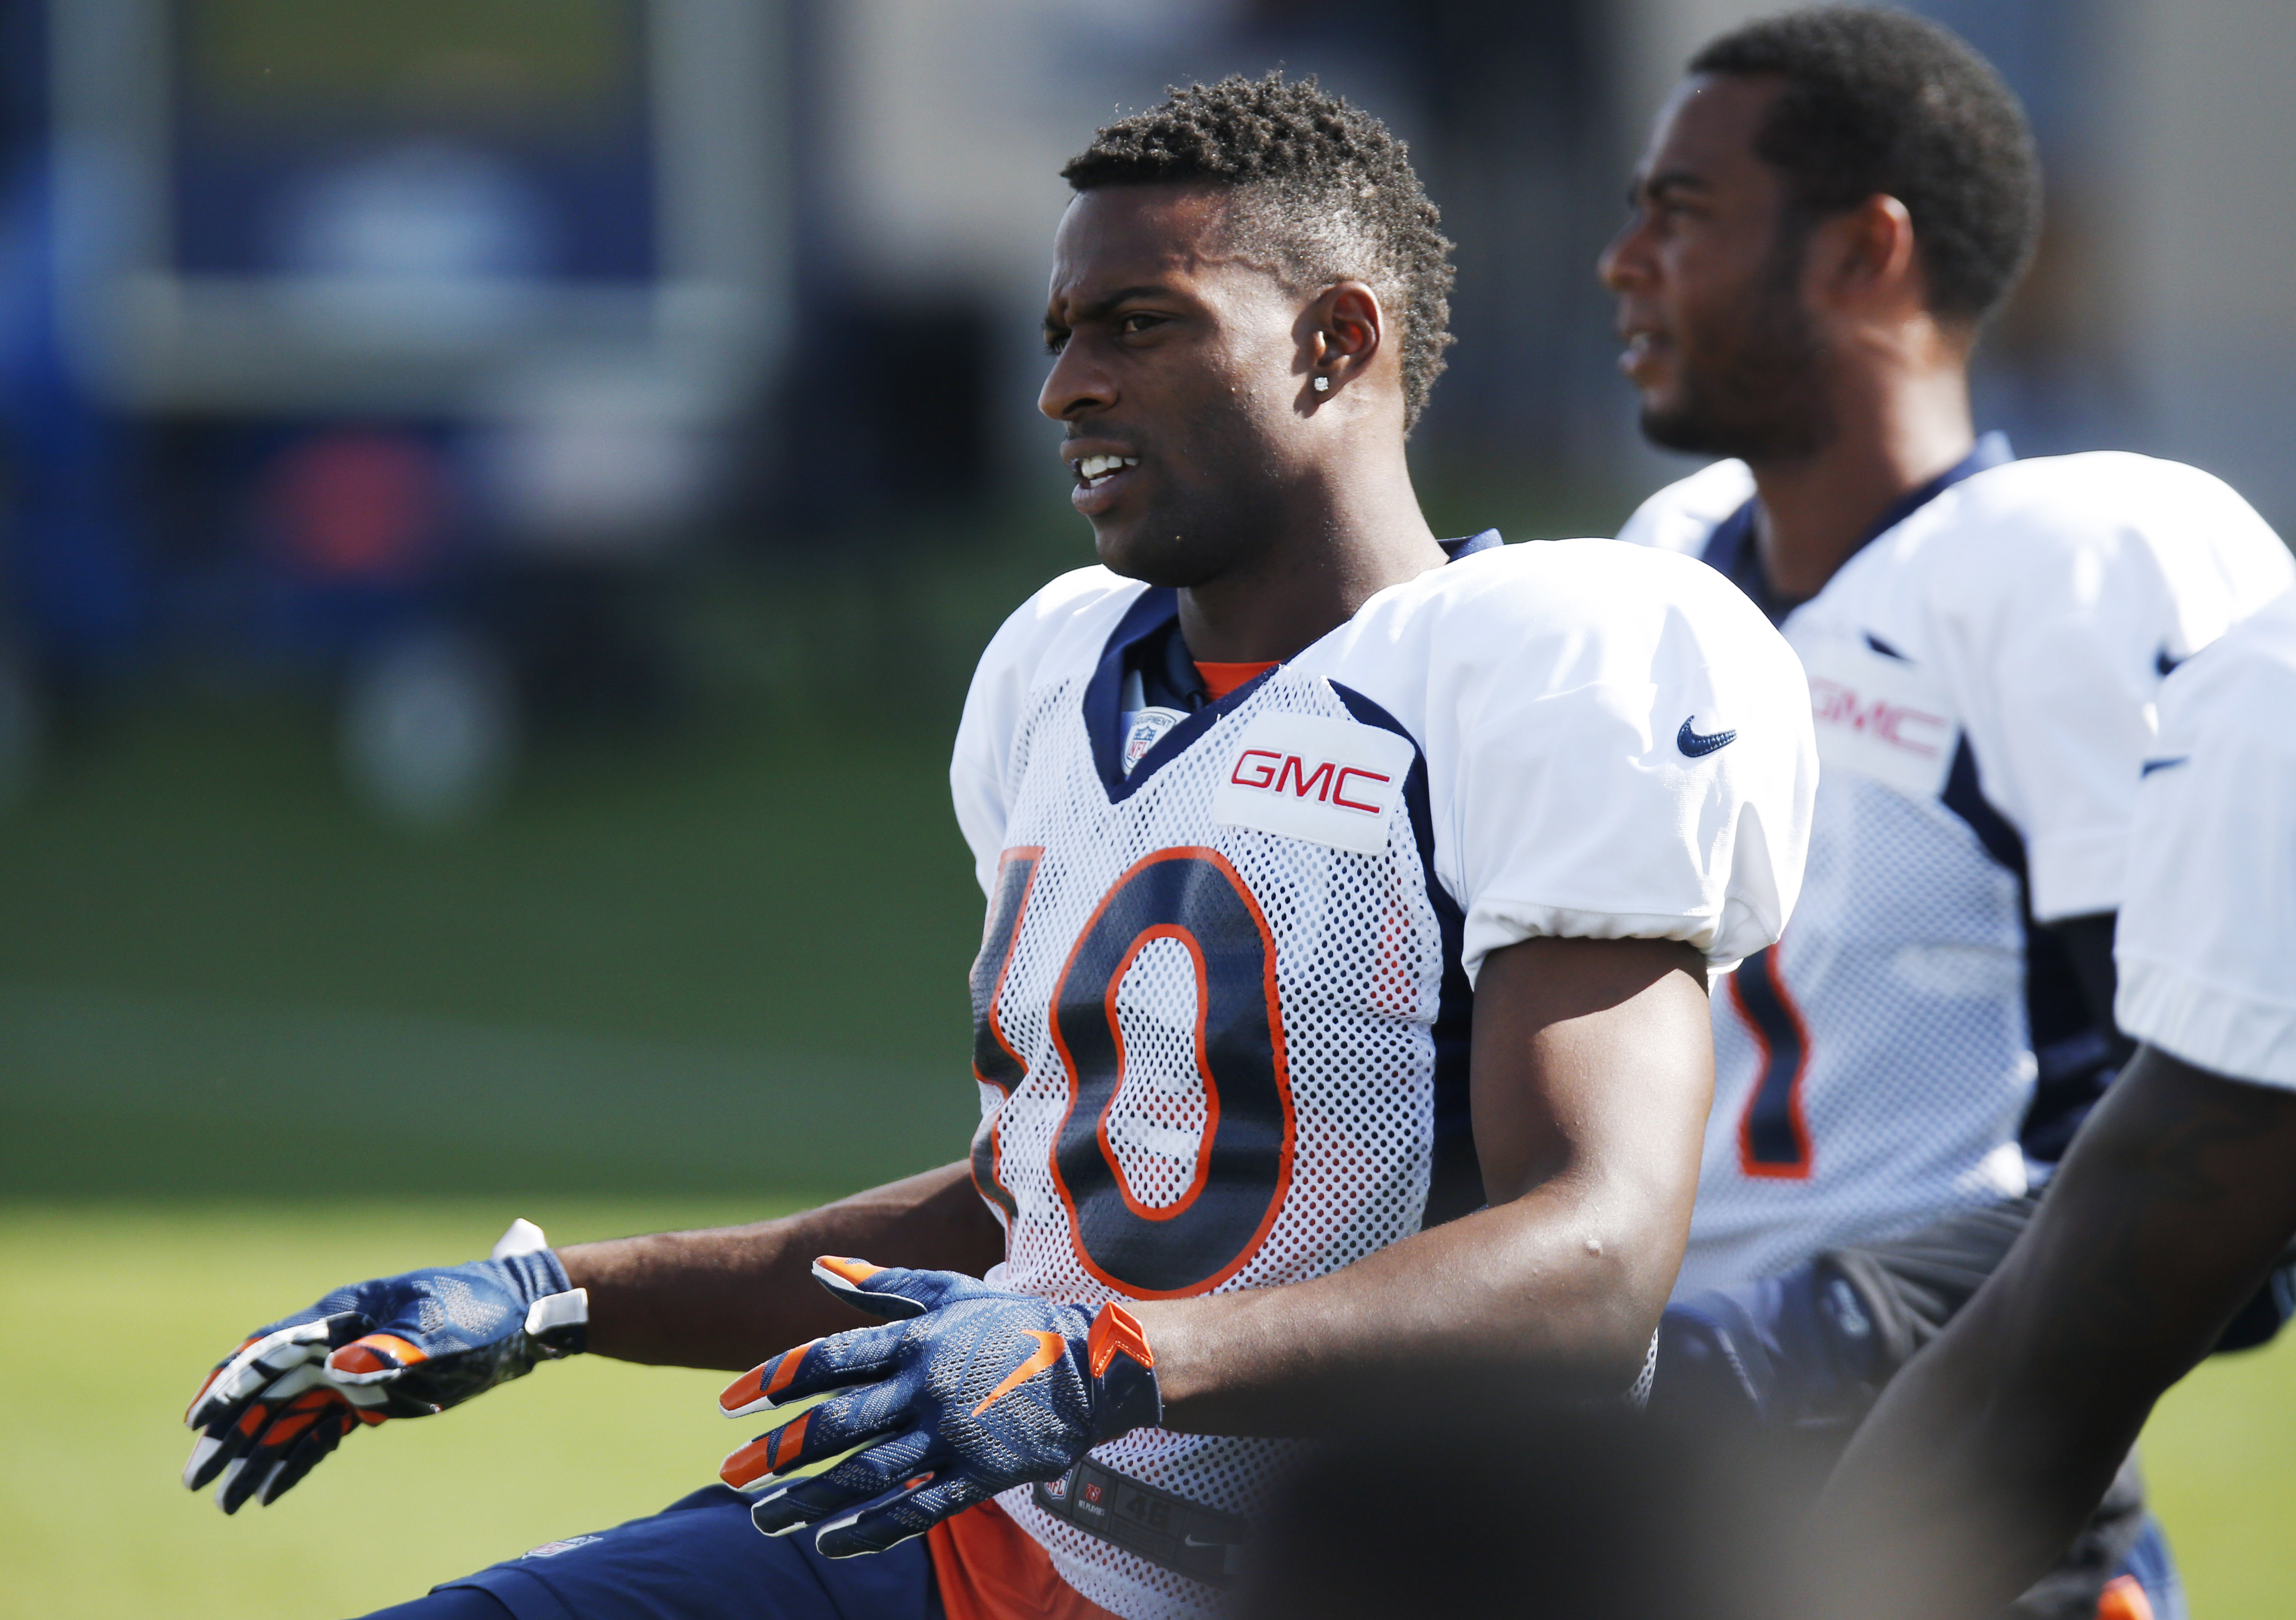 In this Sunday, Aug. 2, 2015, photo, Denver Broncos wide receiver Emmanuel Sanders stretches before taking part in the team's NFL football training camp in Englewood, Colo. Sanders was so eager to impress his new team and build a rapport with Peyton Manni